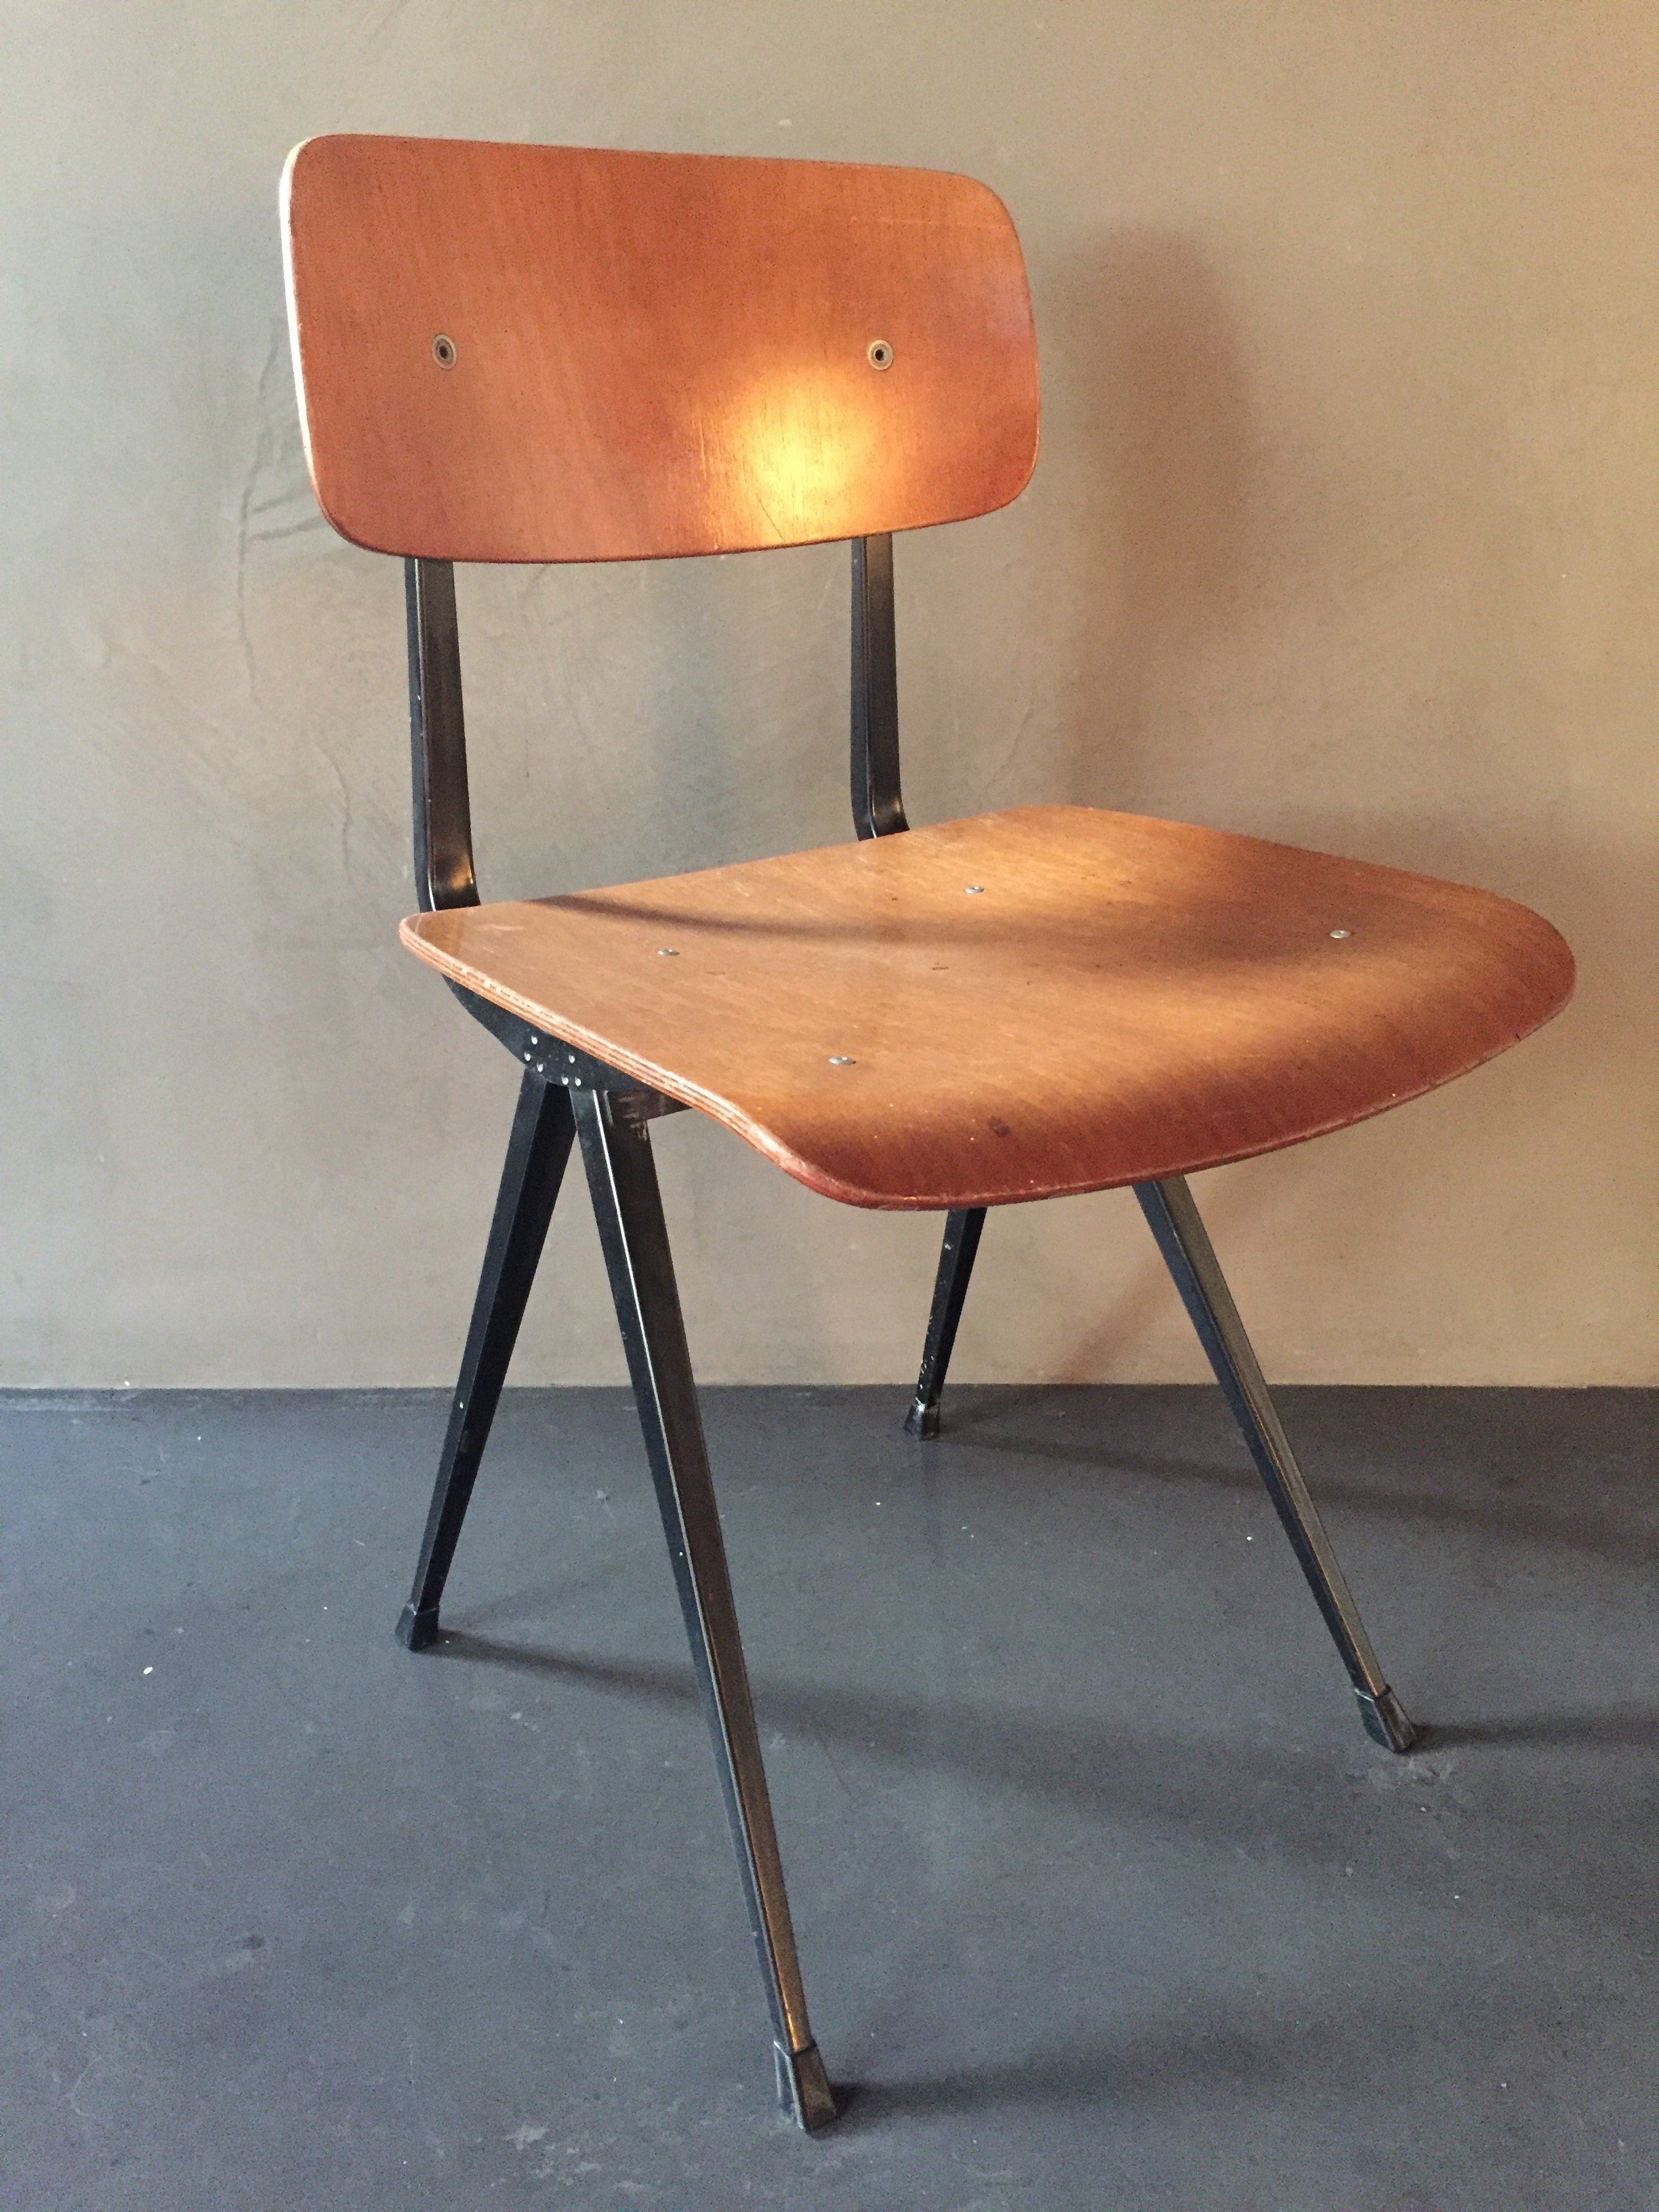 Etonnant 8 X Result Dinner Chair By Friso Kramer For Ahrend De Cirkel, 1960s